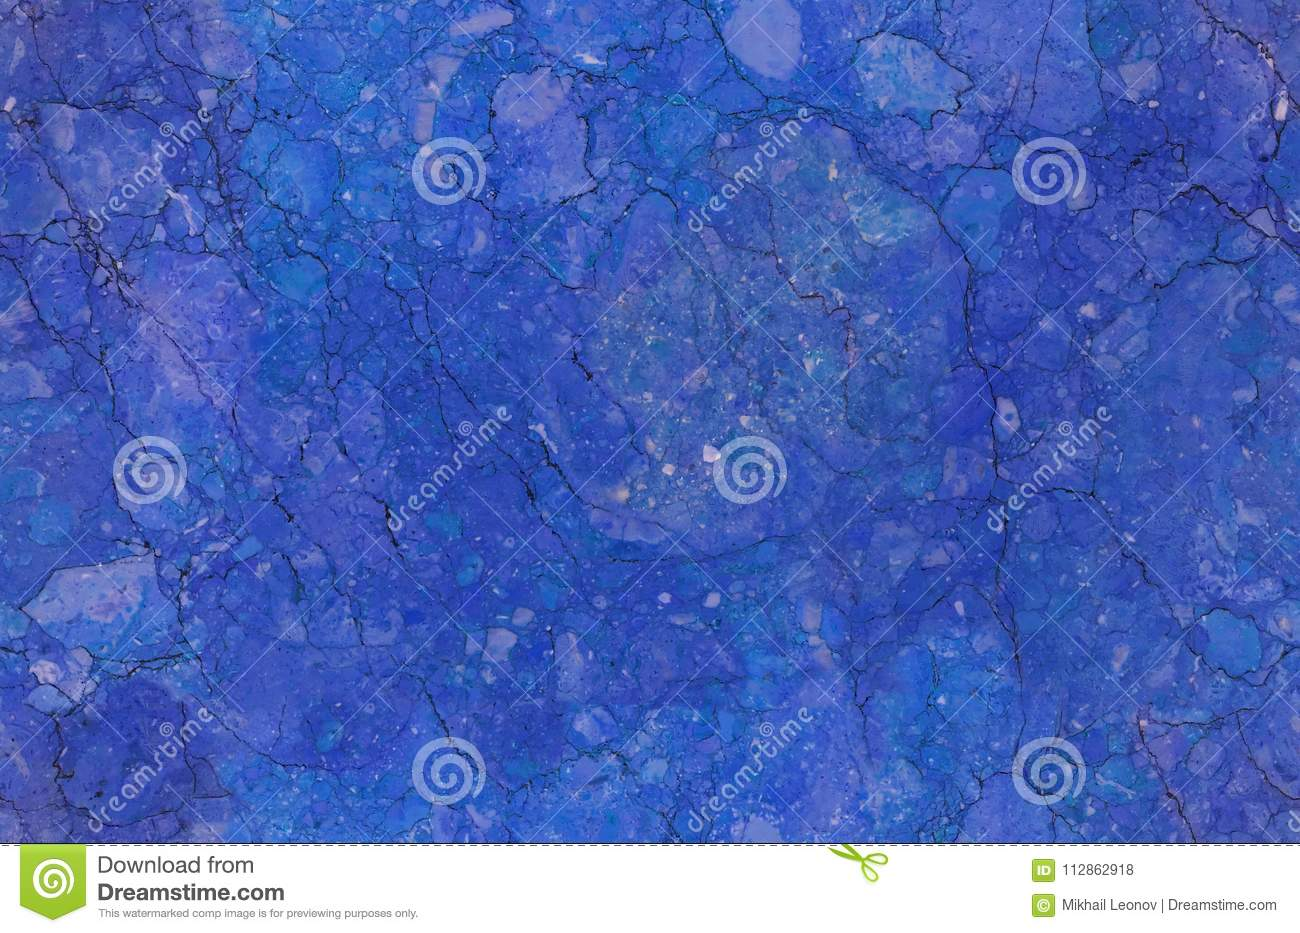 Blue natural seamless marble stone texture pattern background. Rough natural stone seamless marble texture surface with cracks, de